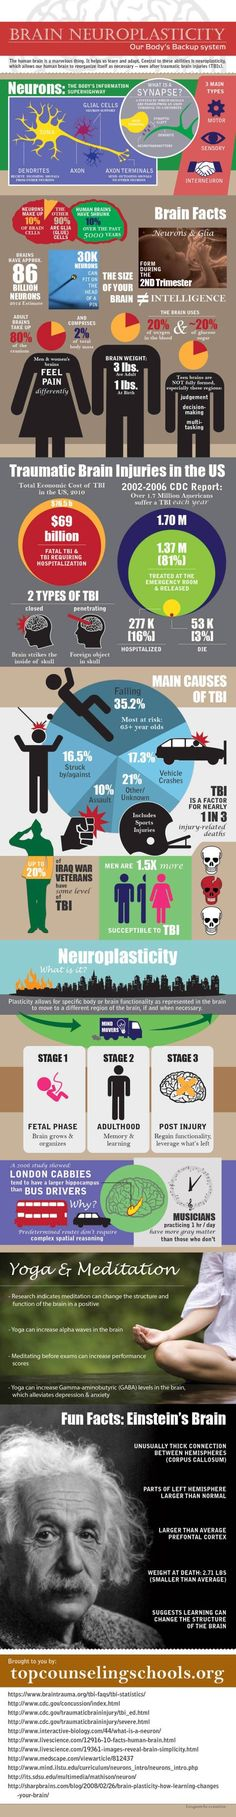 BRAIN NEUROPLASTICITY: Our body's backup system - actually infographic more about brain facts - but still interesting